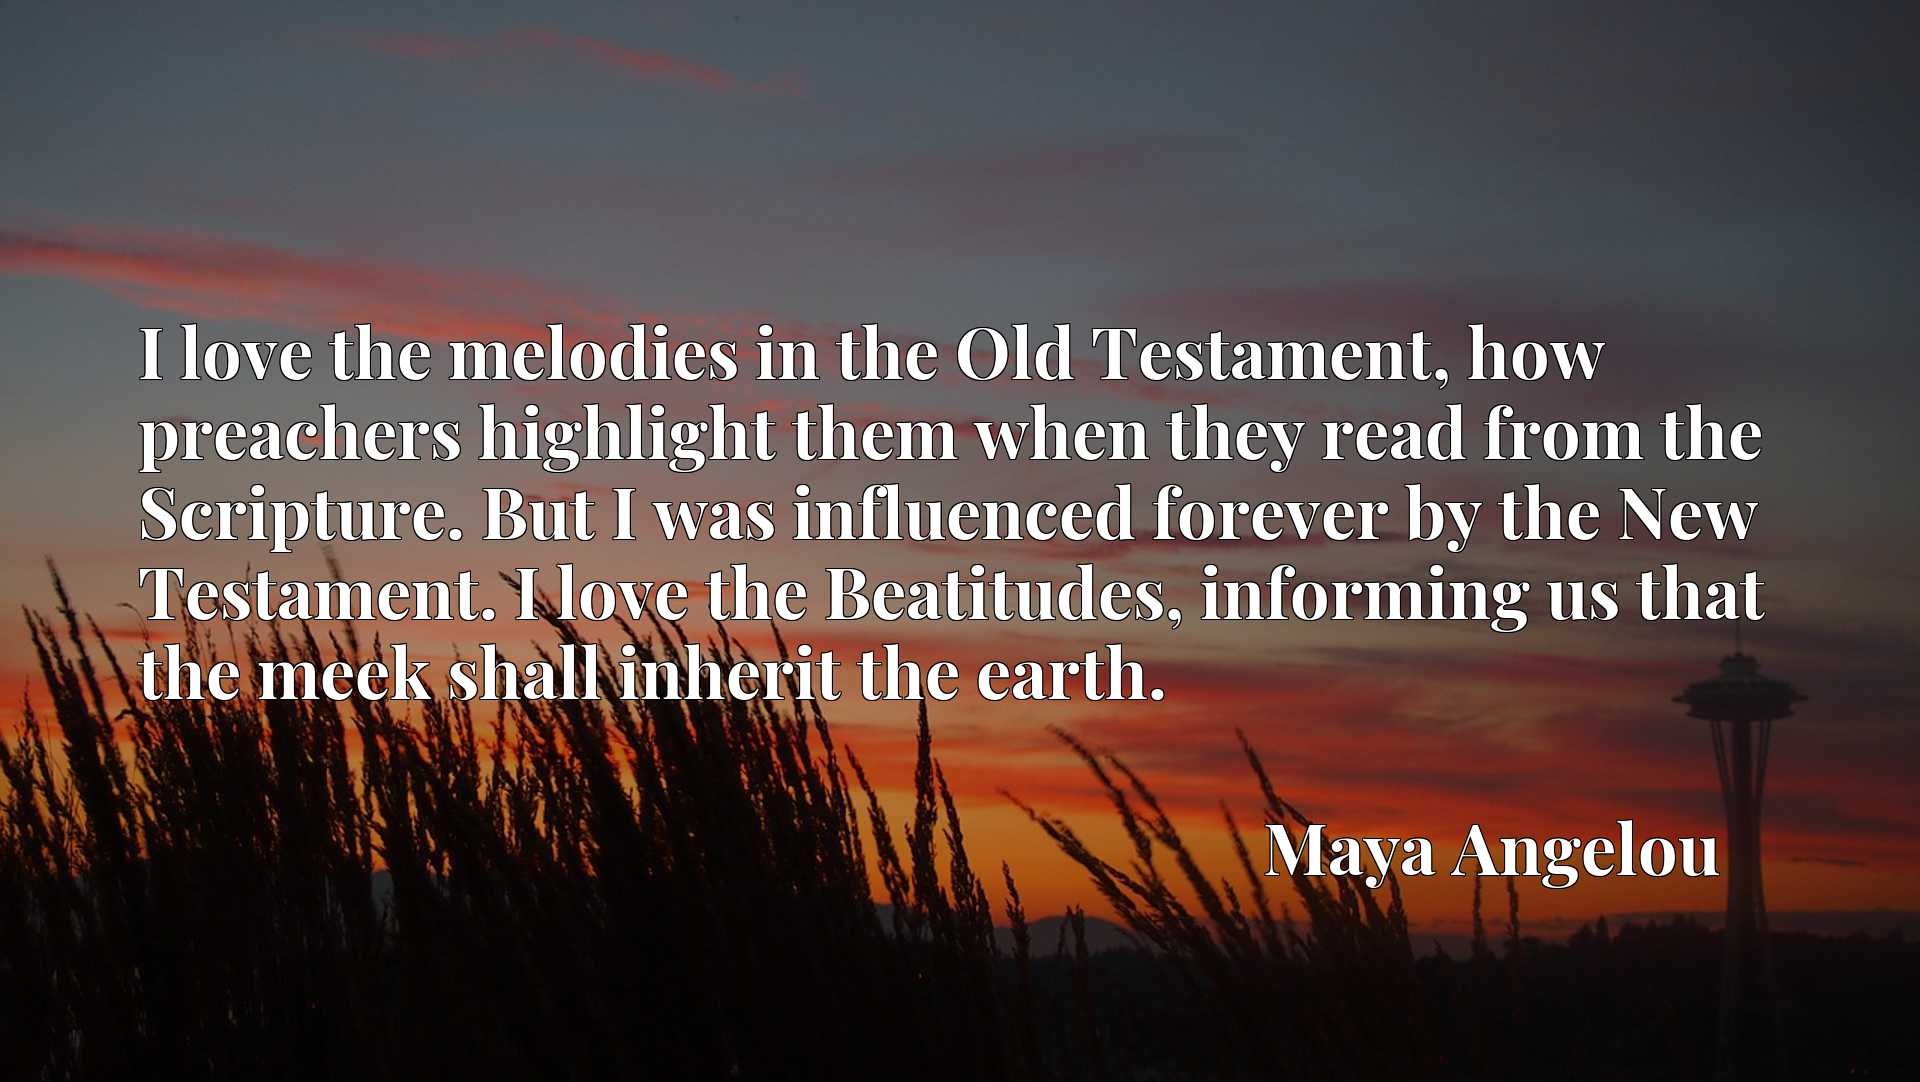 Quote Picture :I love the melodies in the Old Testament, how preachers highlight them when they read from the Scripture. But I was influenced forever by the New Testament. I love the Beatitudes, informing us that the meek shall inherit the earth.